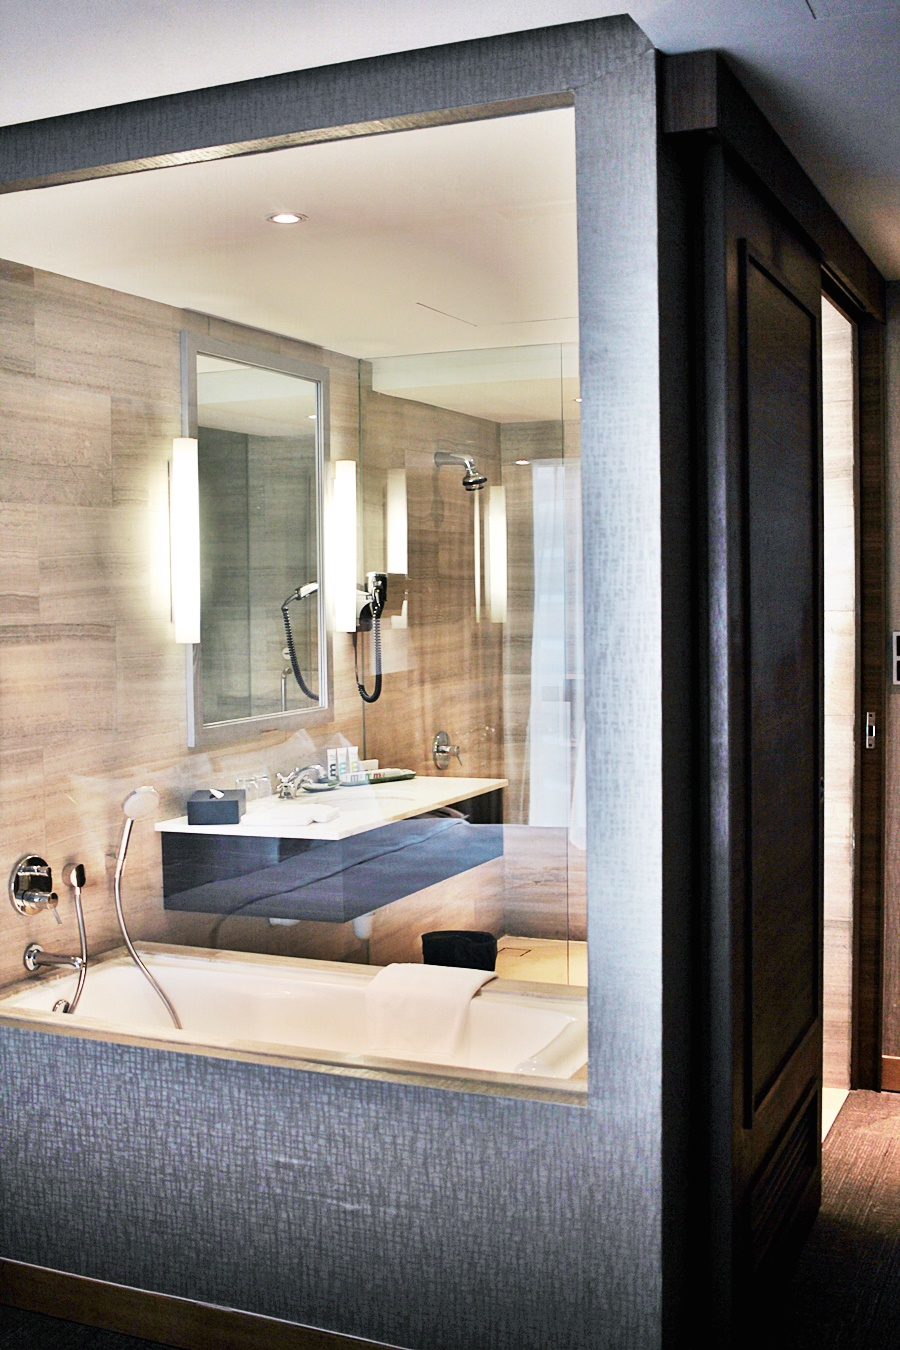 bathroom windown luxury hotel in singapore great design